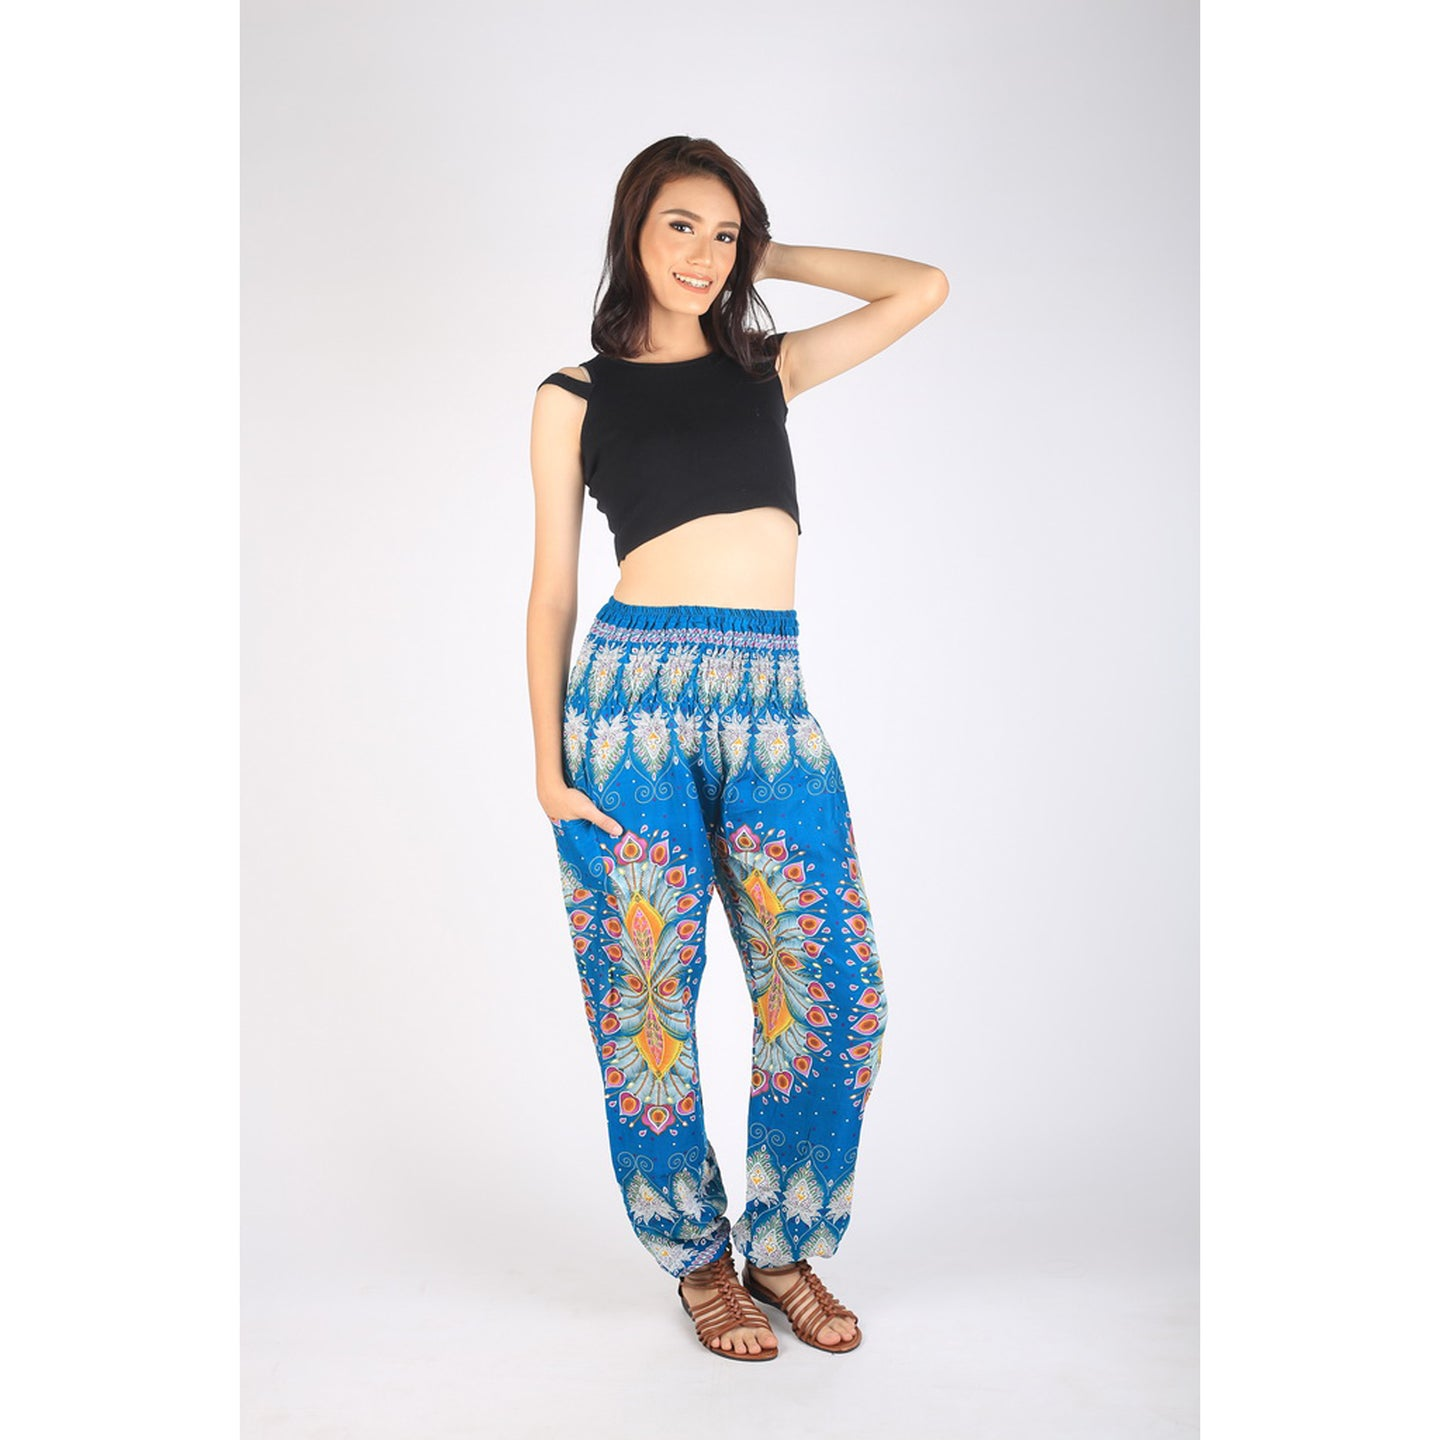 Tie dye 192 women harem pants in Ocean blue PP0004 020192 05